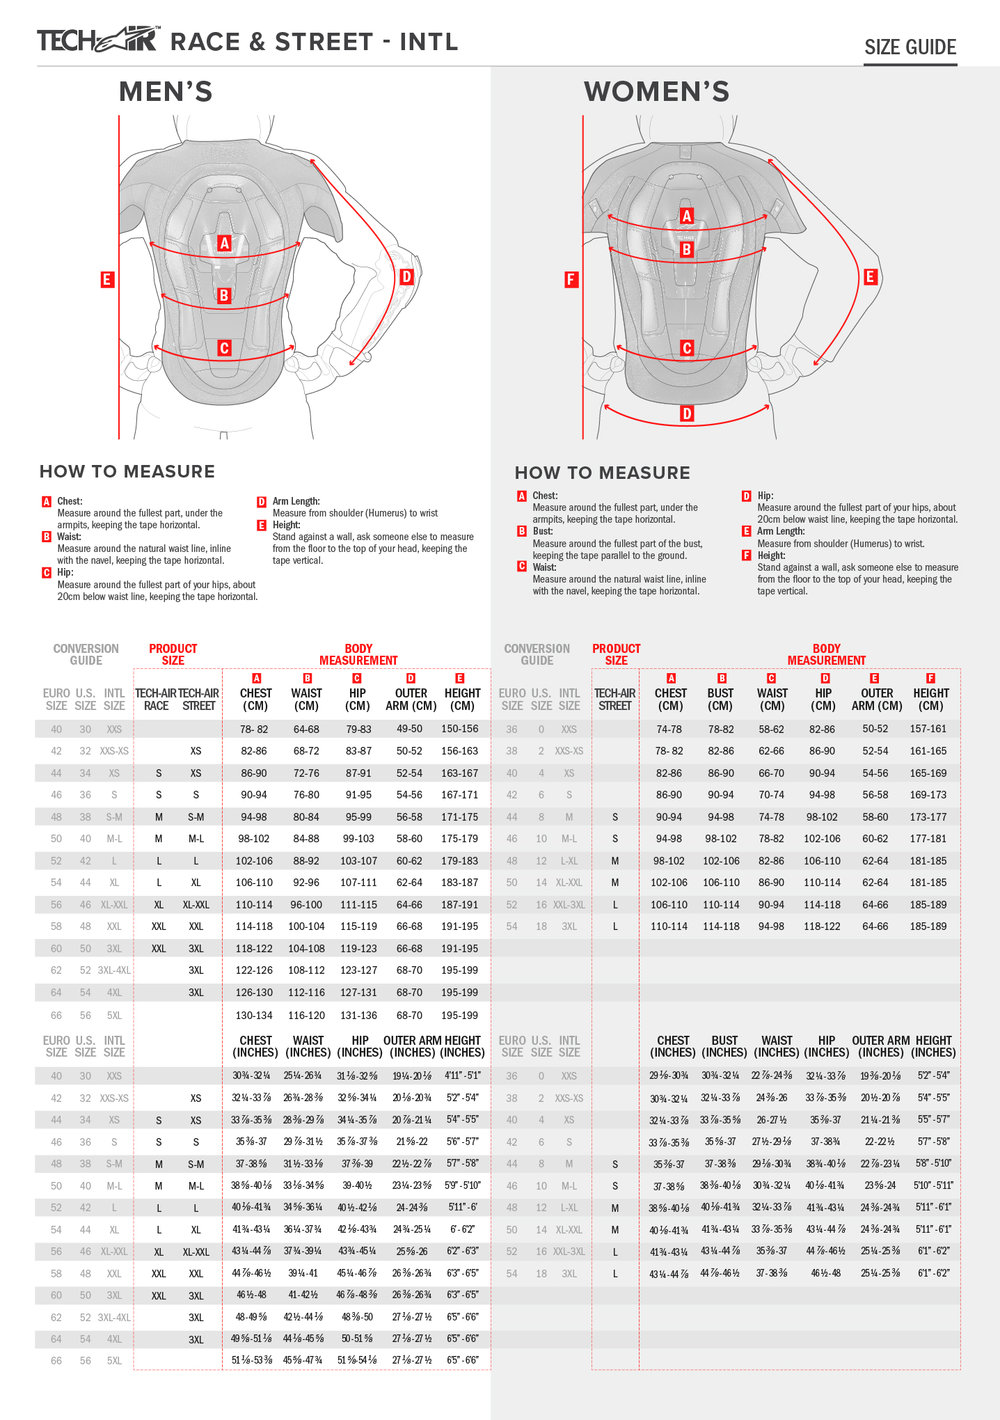 TECH AIR AIRBAG SIZING